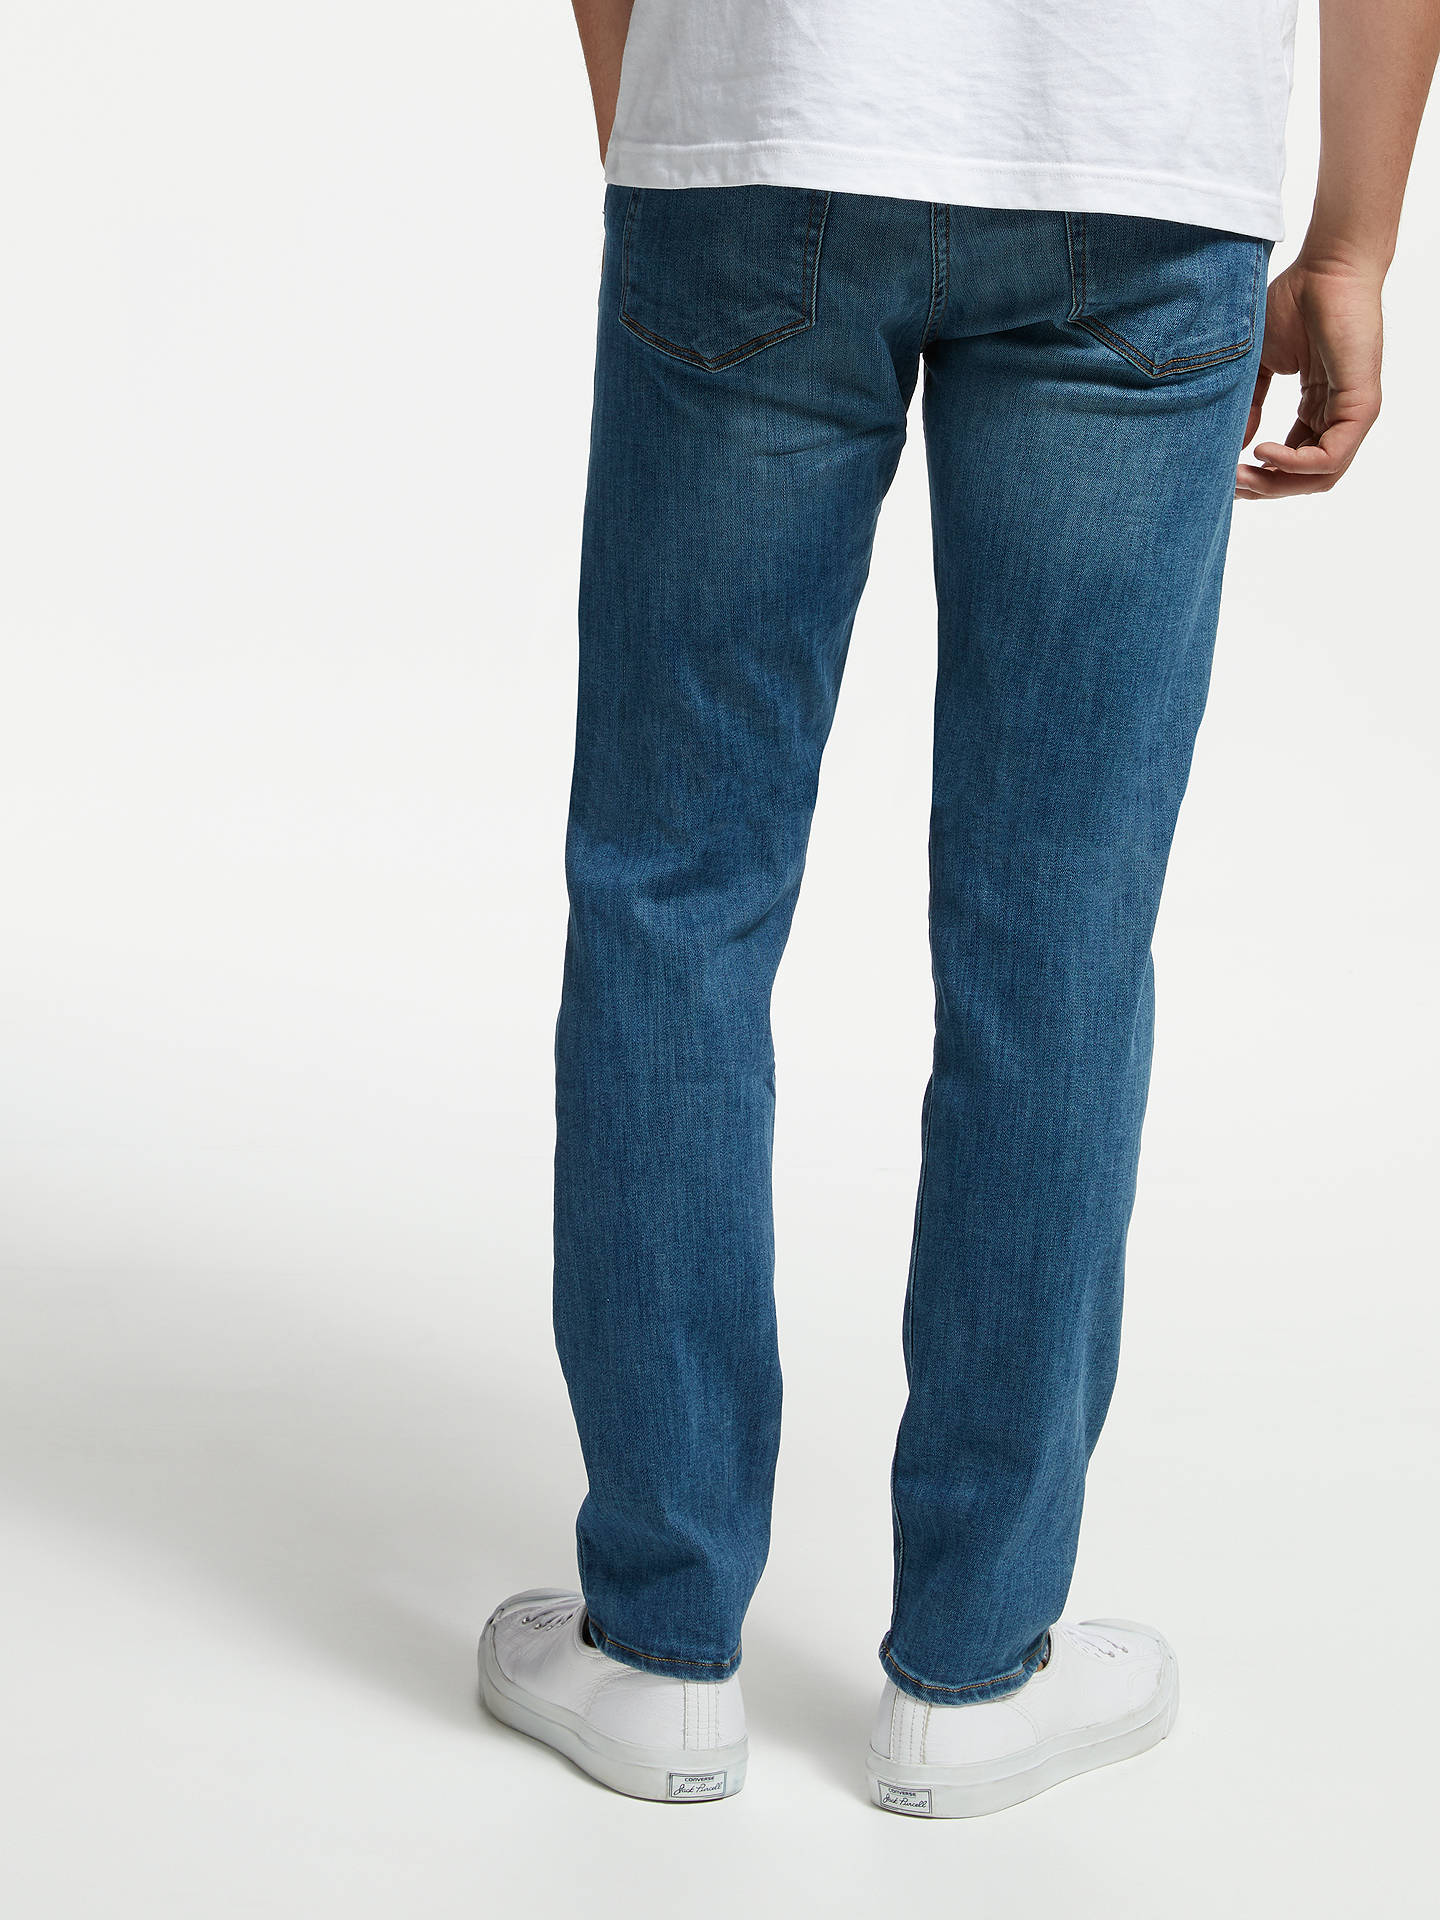 BuyPS Paul Smith Tapered Jeans, Blue, 32R Online at johnlewis.com